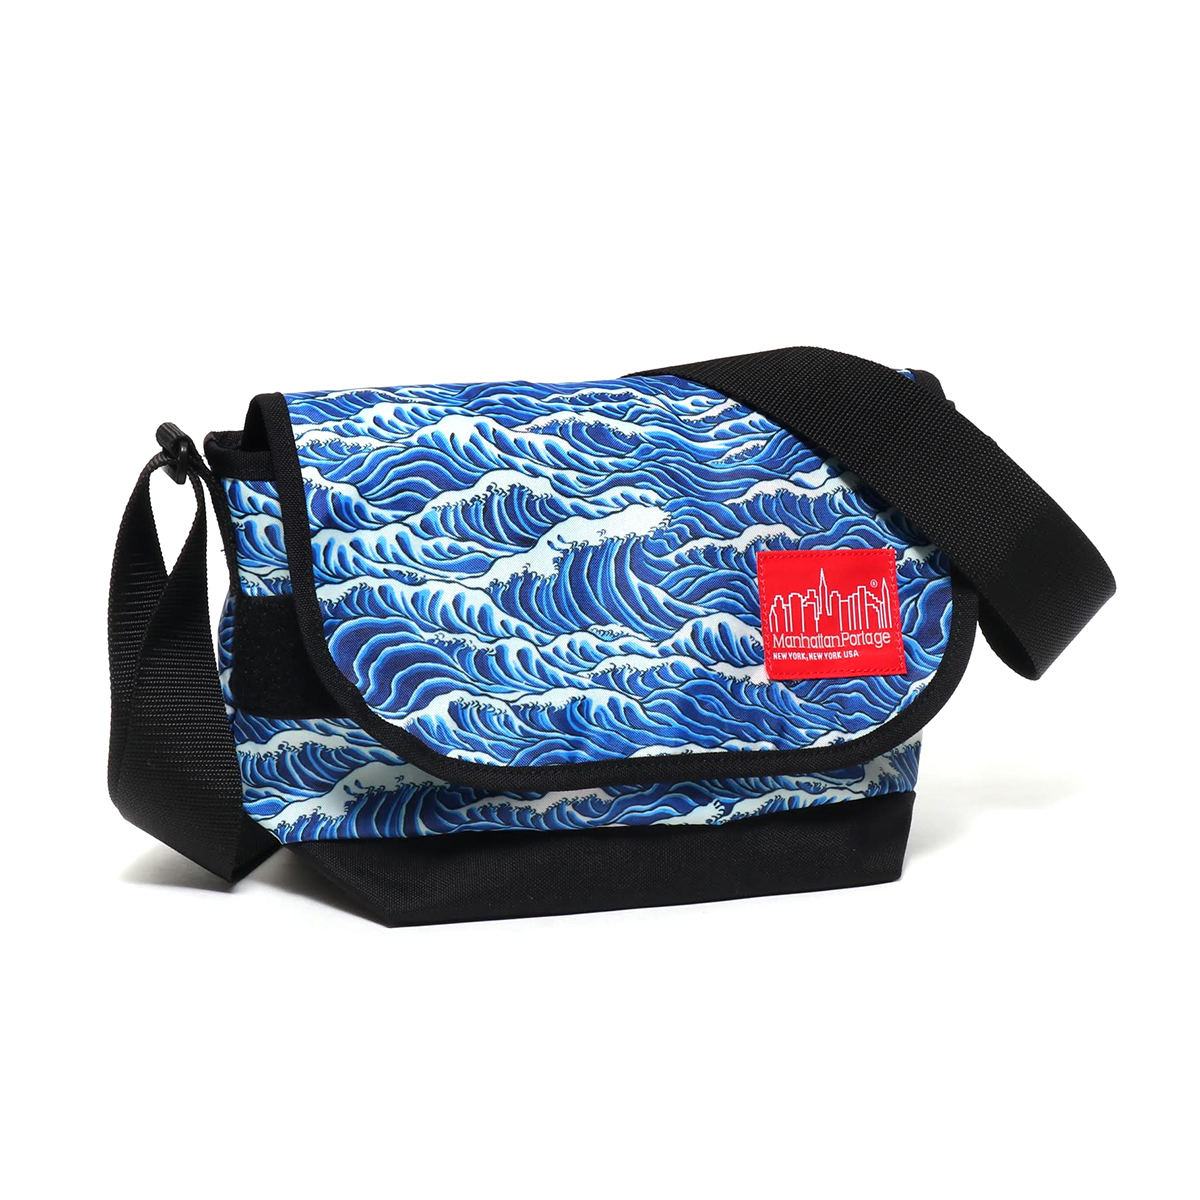 Manhattan Portage x T.T.T. x ATMOS LAB Messenger Bag